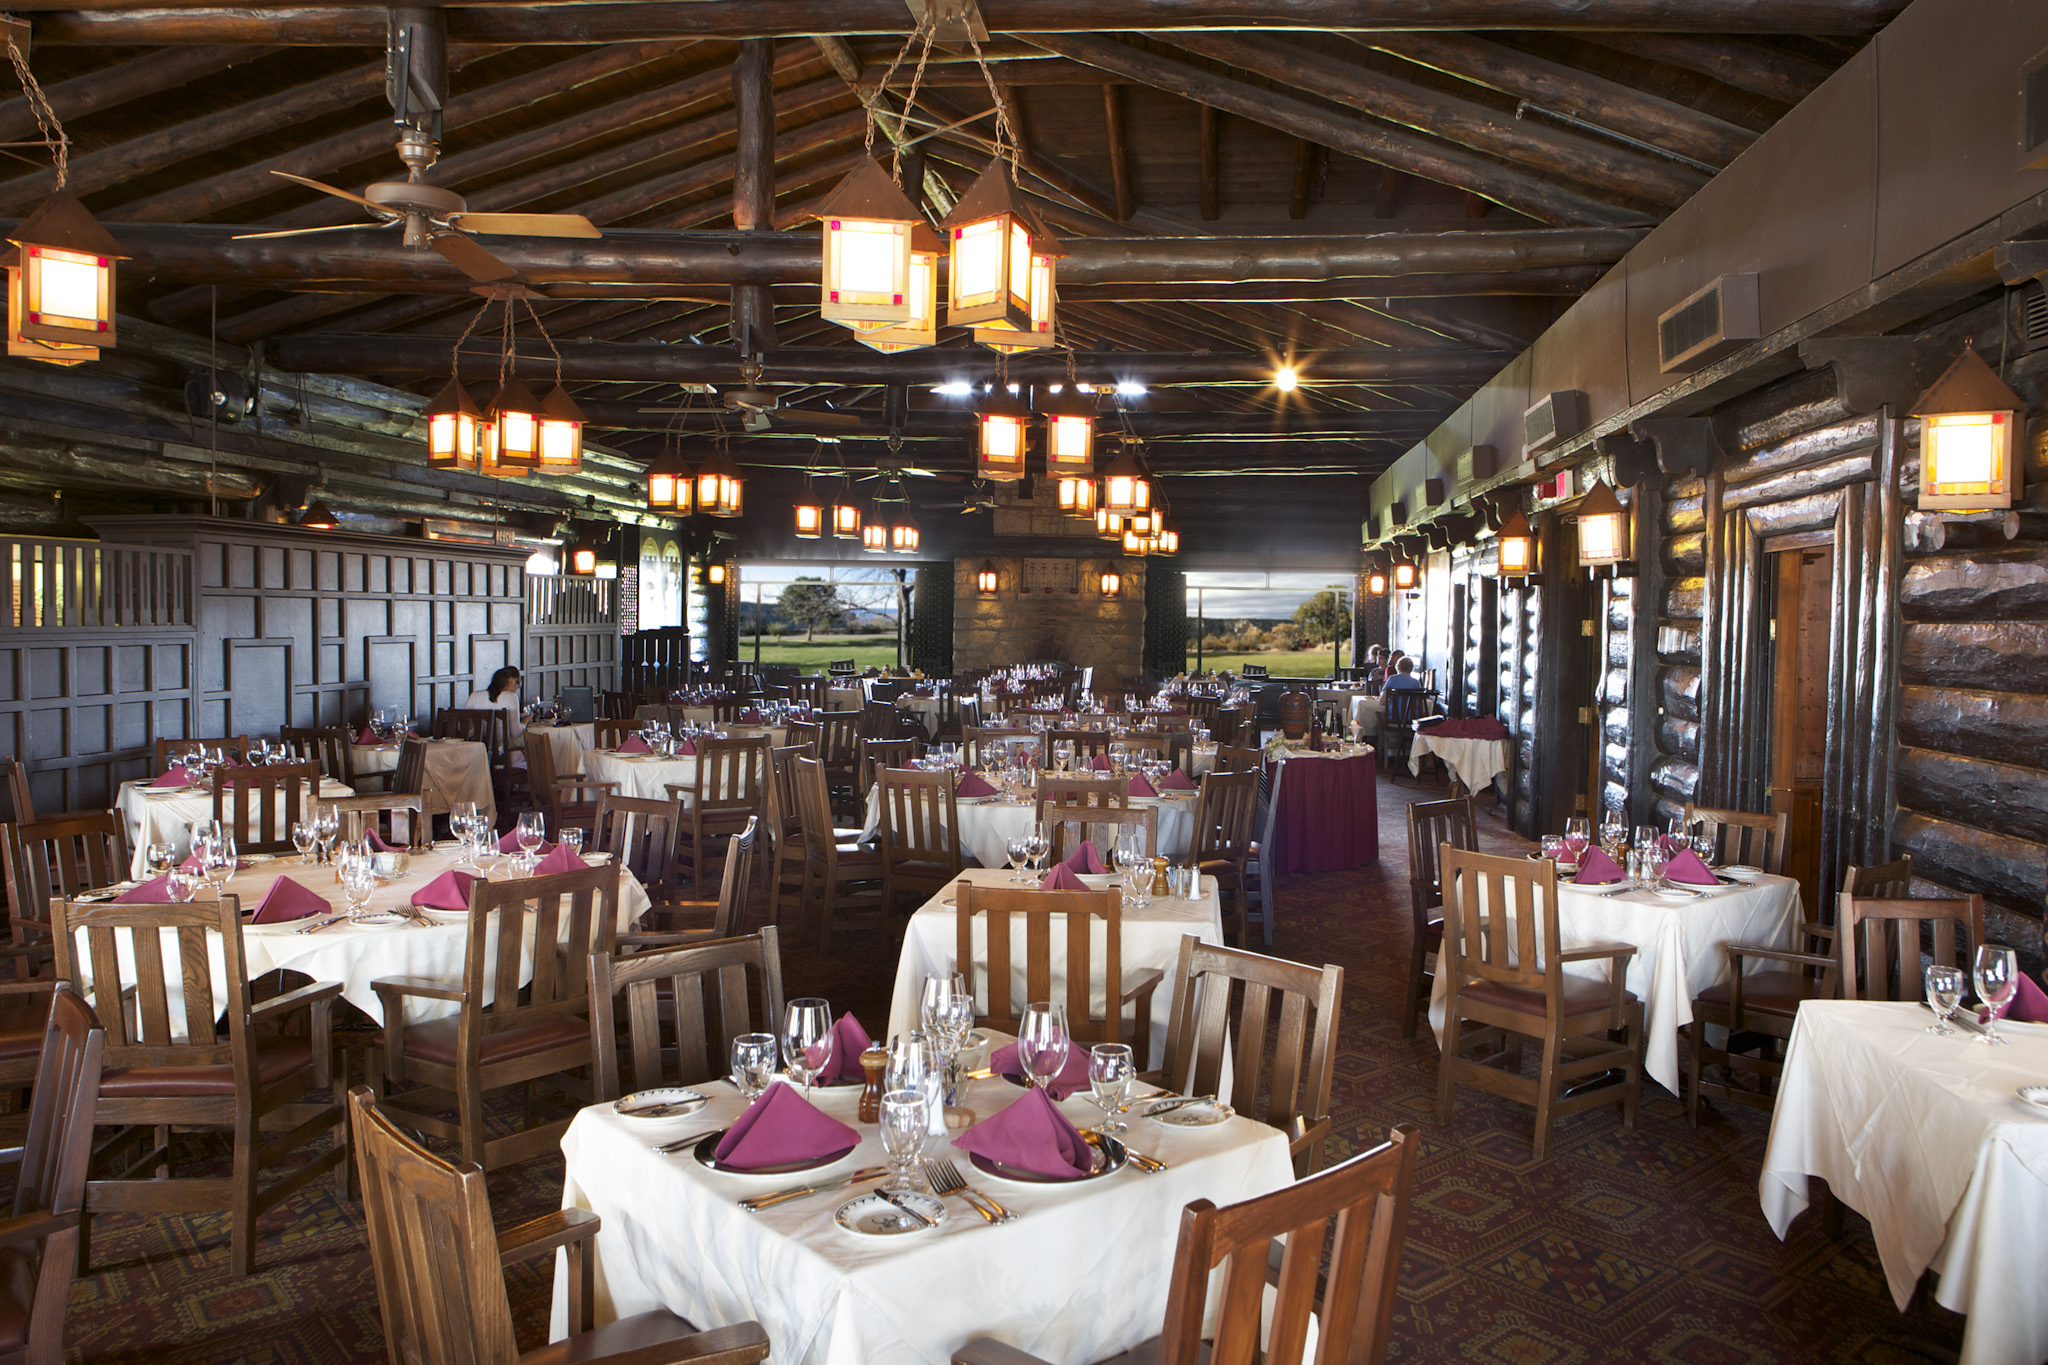 Grand Canyon Lodge Dining Room Alluring Catering & Dining Services  Grand Canyon National Park Lodges Review